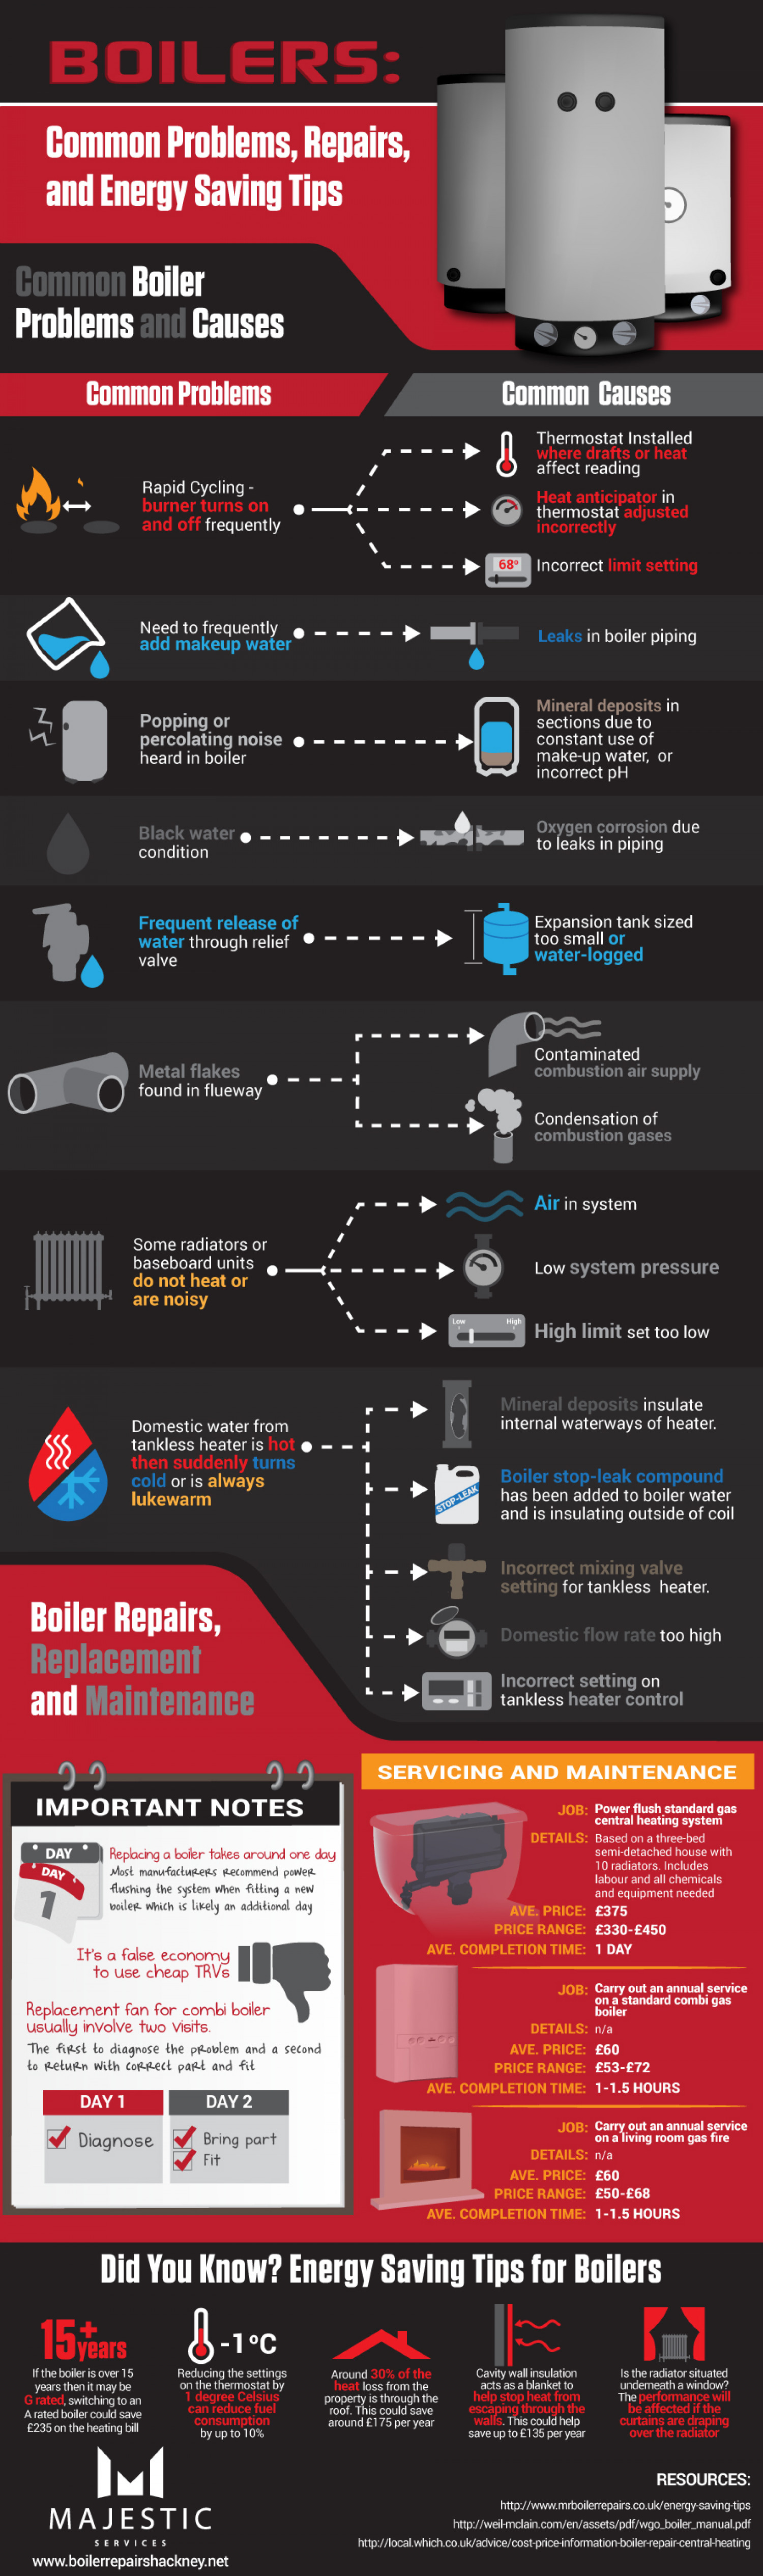 Boilers: Common Problems, Repairs, and Energy Saving Tips Infographic